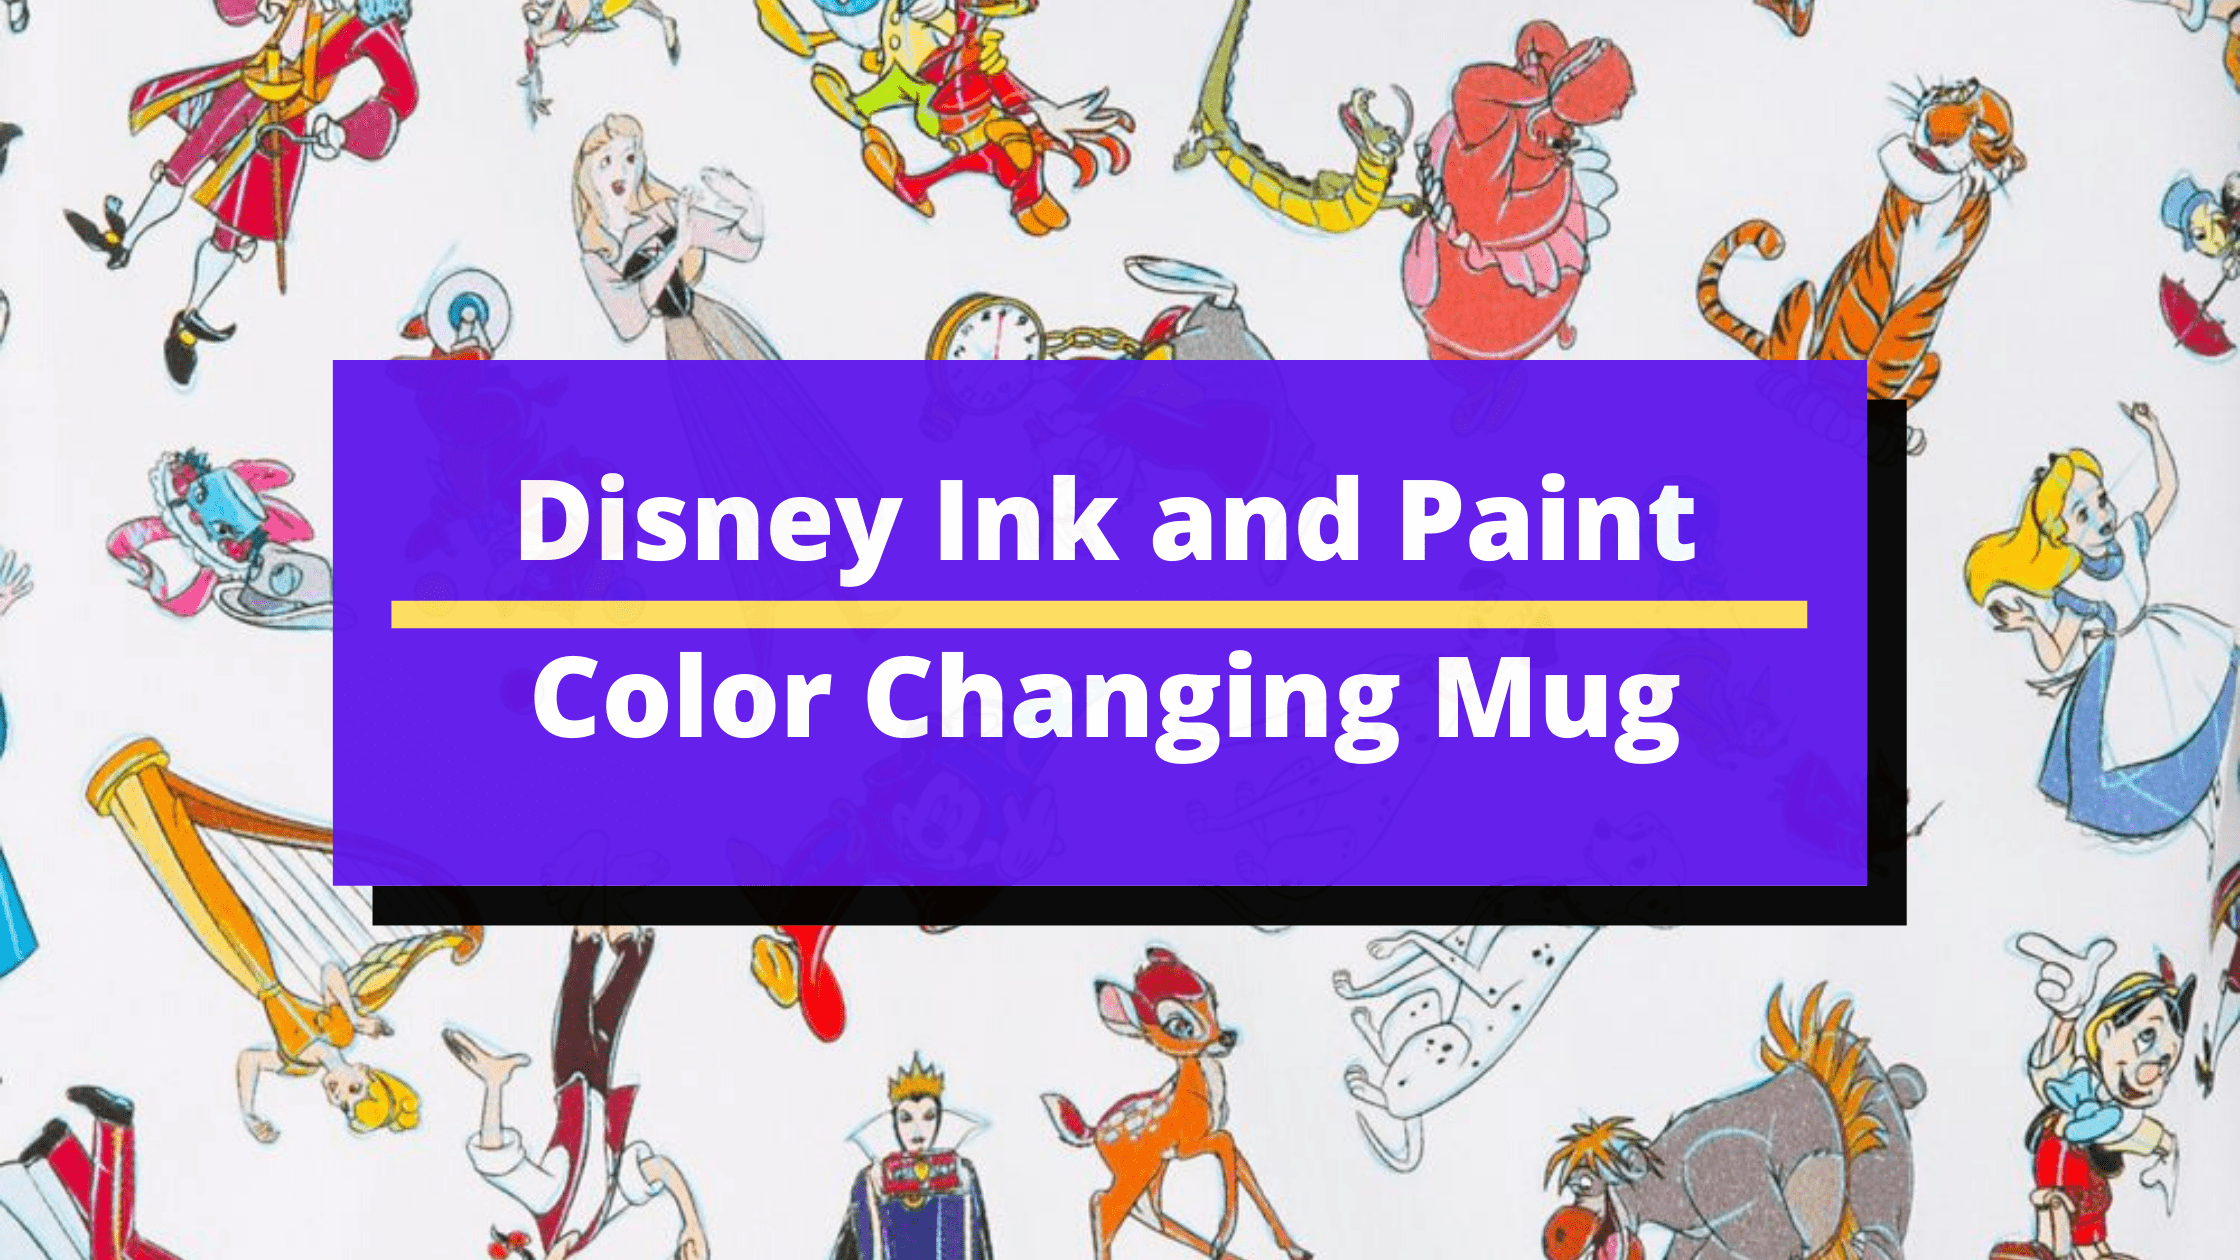 New Disney Ink and Paint Color Changing Mug